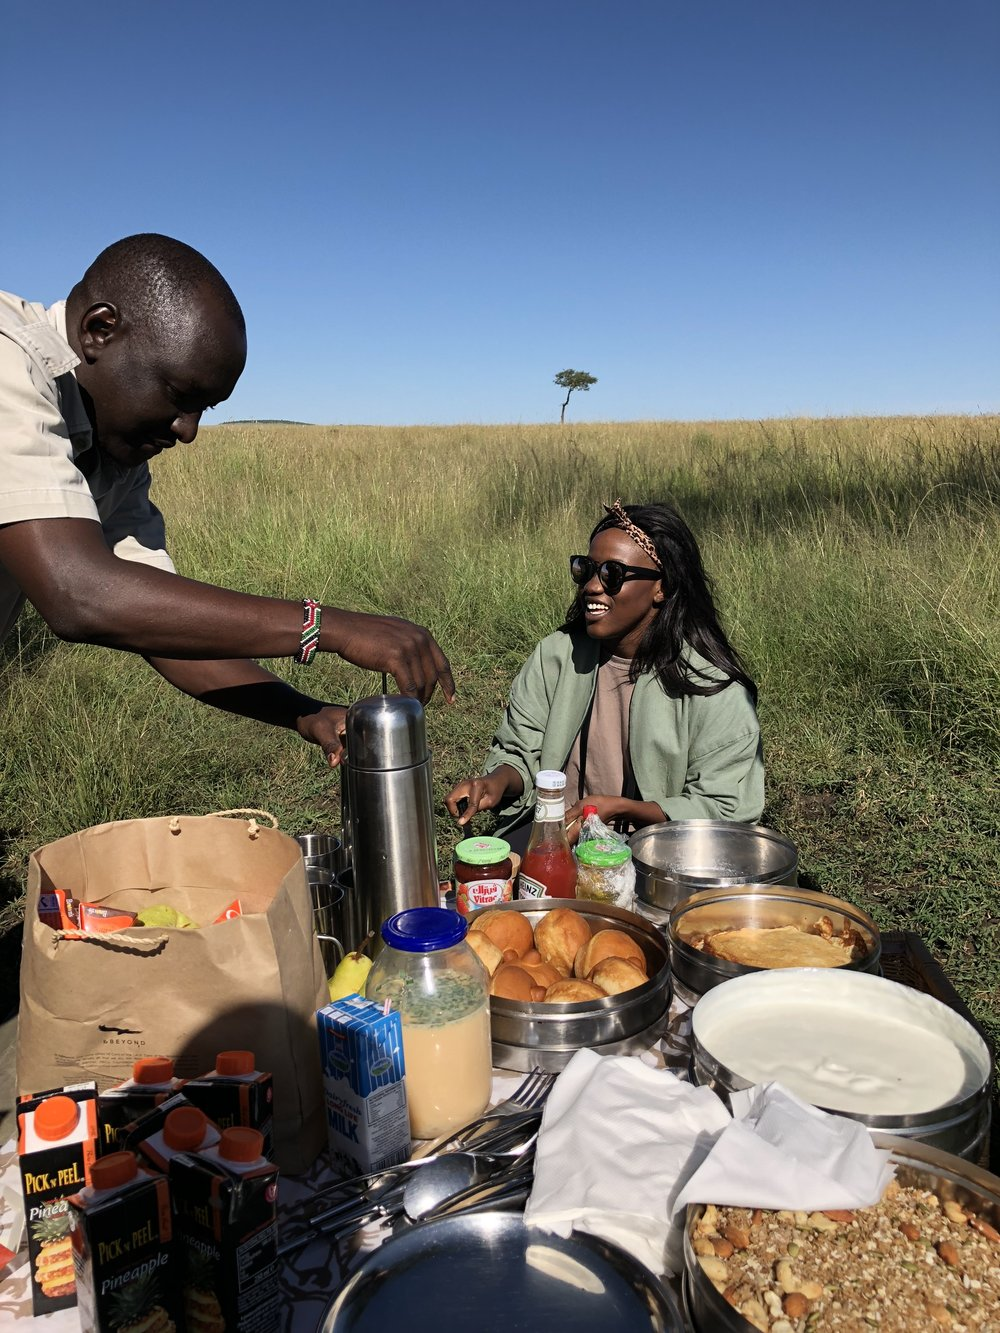 Breakfast in the Savannah